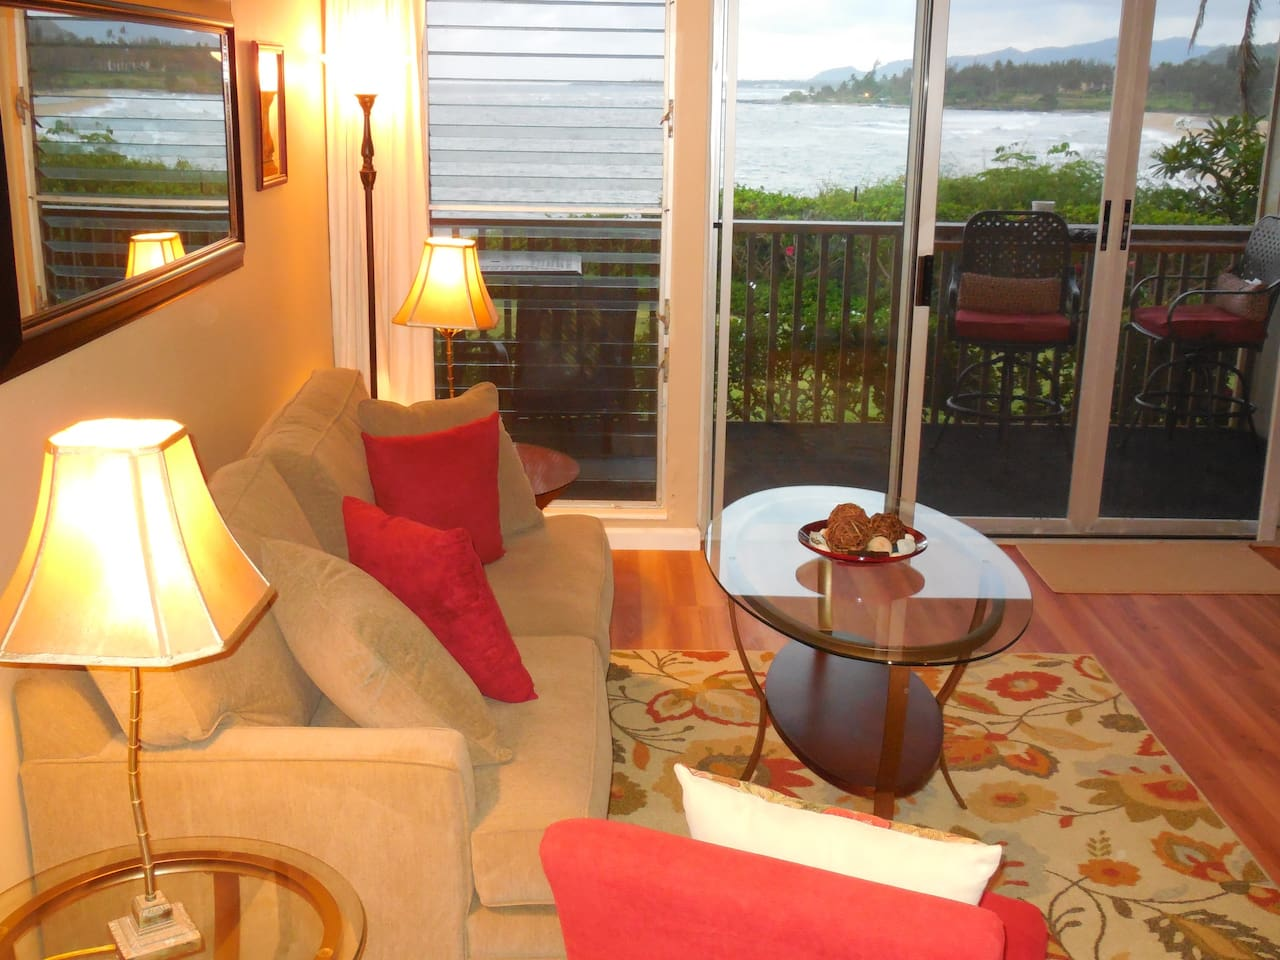 Sit on the Lanai or on the sofa to enjoy the view of the ocean and hear the waves